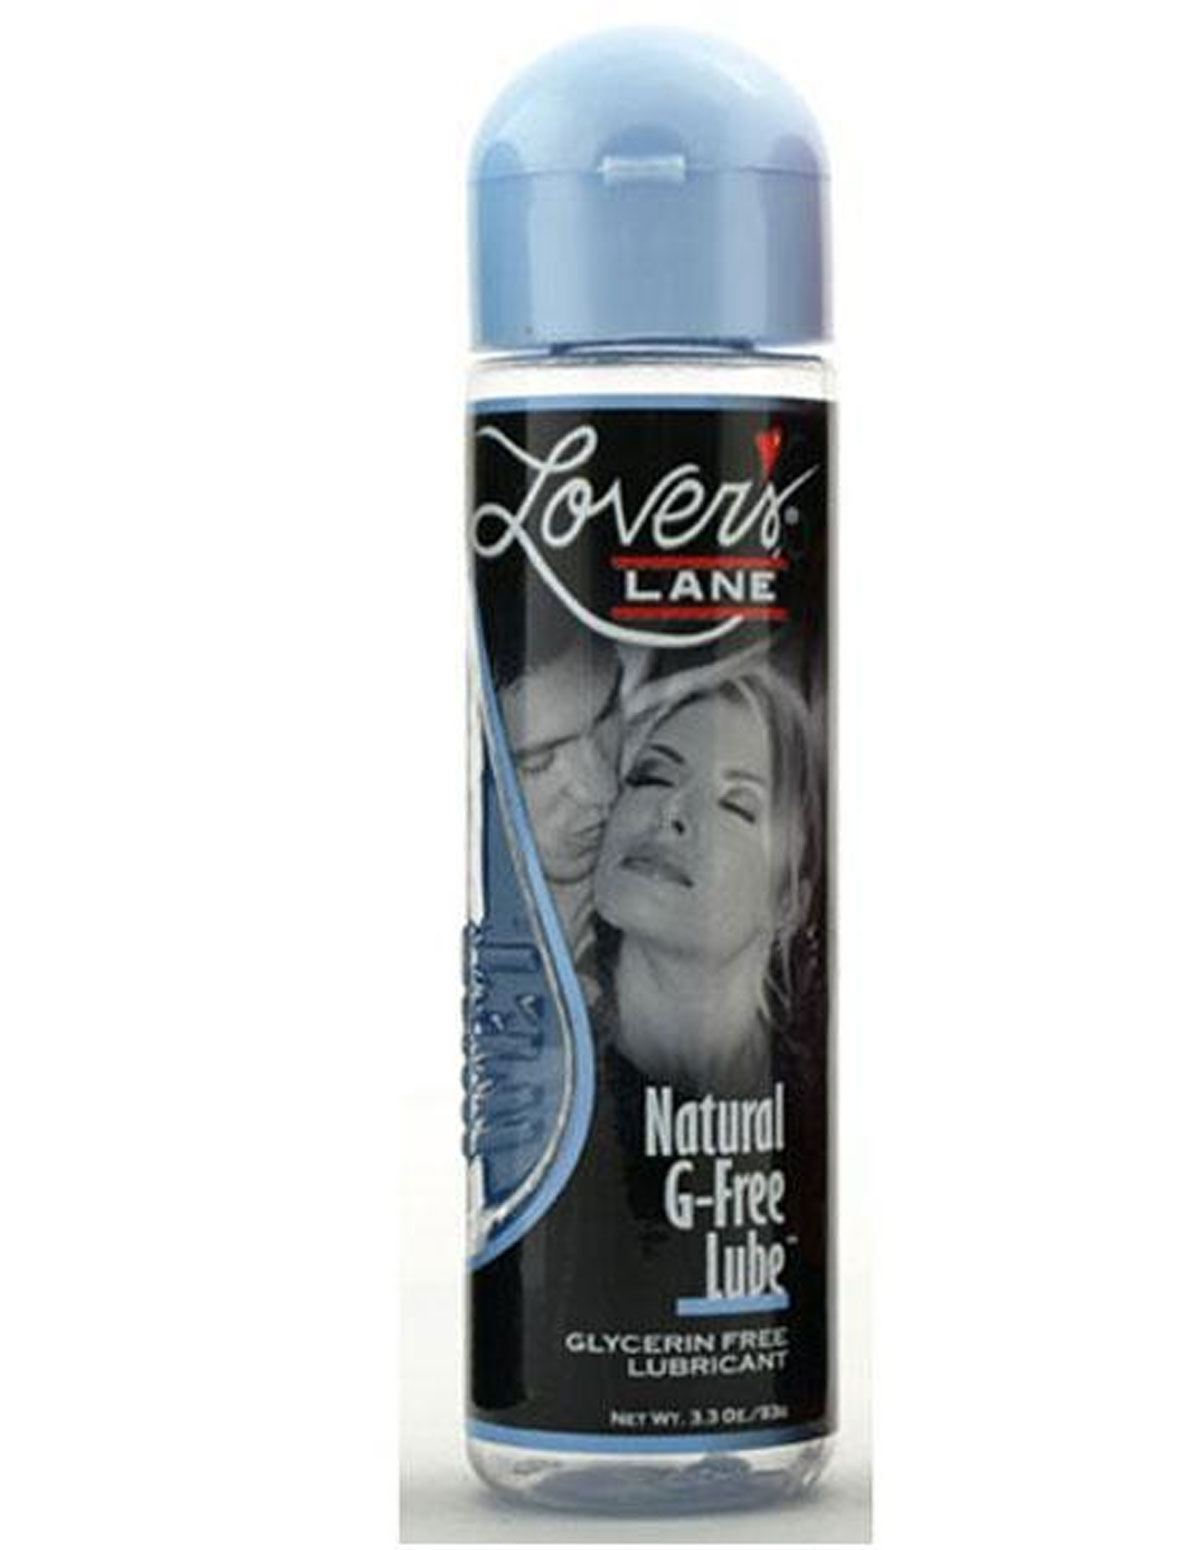 Lovers Lane Natural G-Free Lube